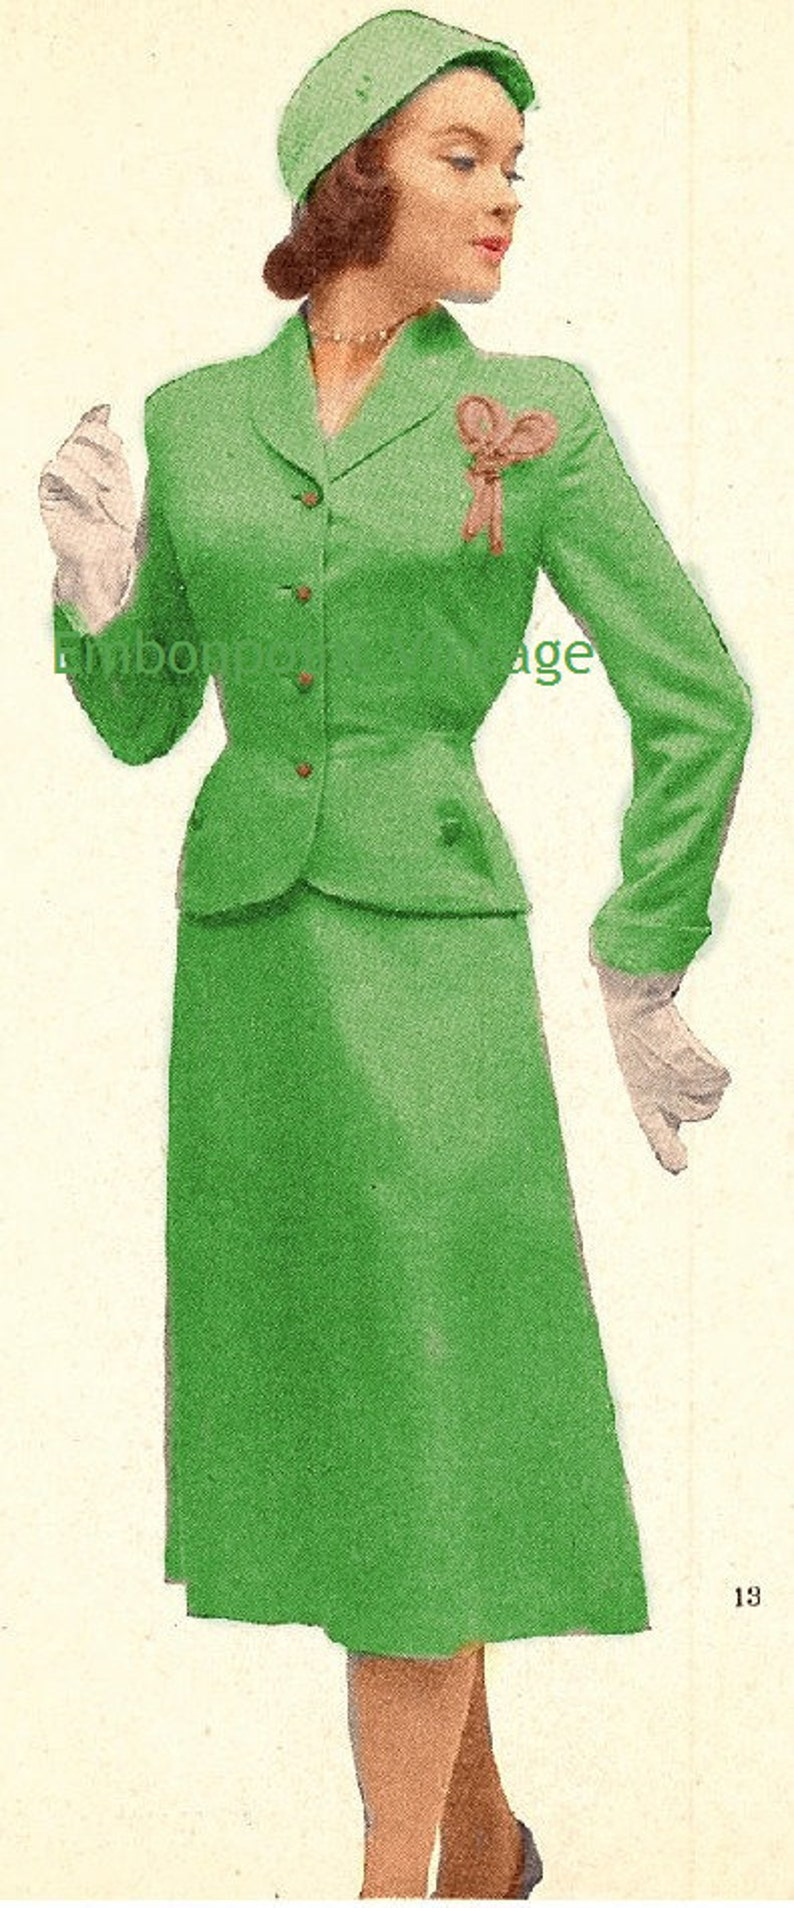 1950s Fabrics & Colors in Fashion Plus Size (or any size) Vintage 1949 Suit Sewing Pattern - PDF - Pattern No 13 Deloris $9.34 AT vintagedancer.com